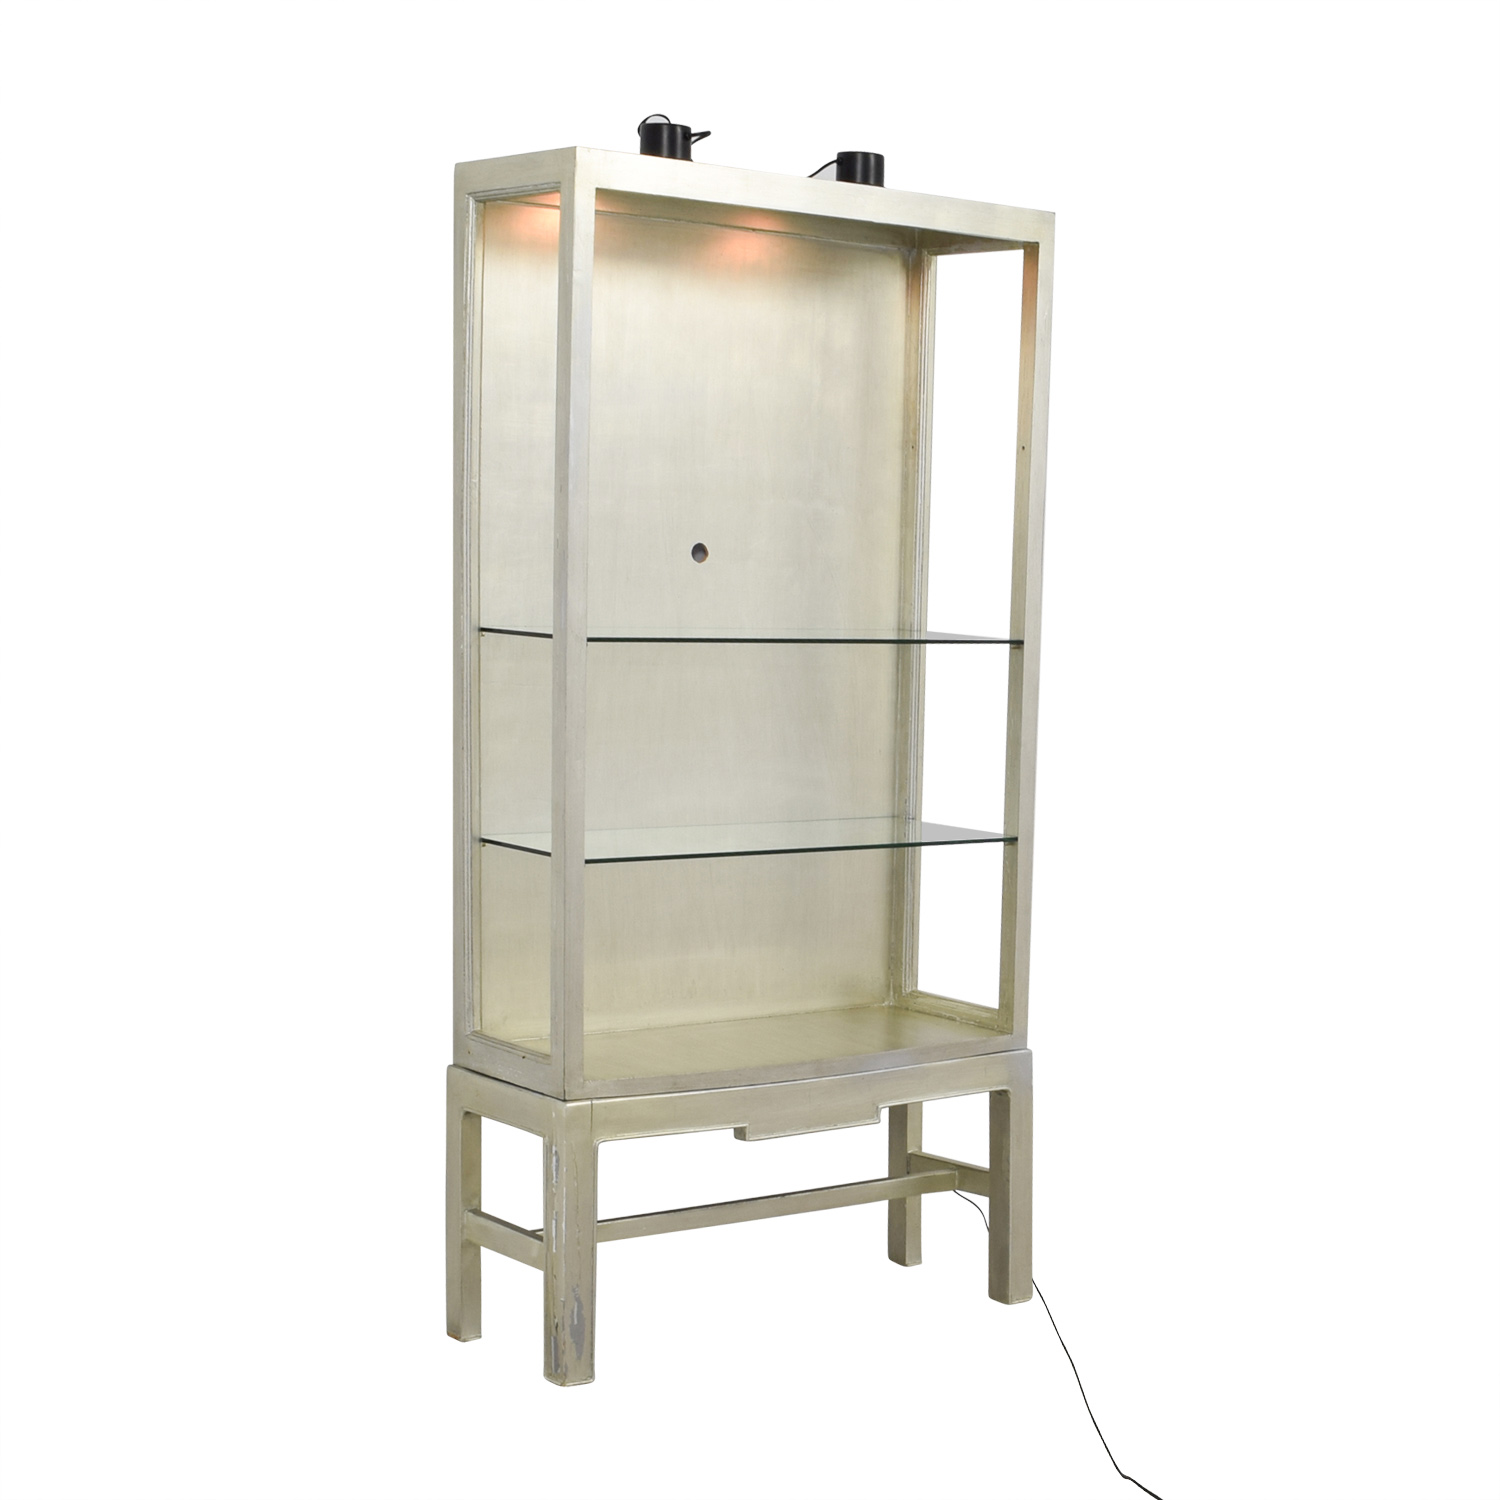 shop Horchow Horchow Silver and Glass Shelving Unit with Lights online